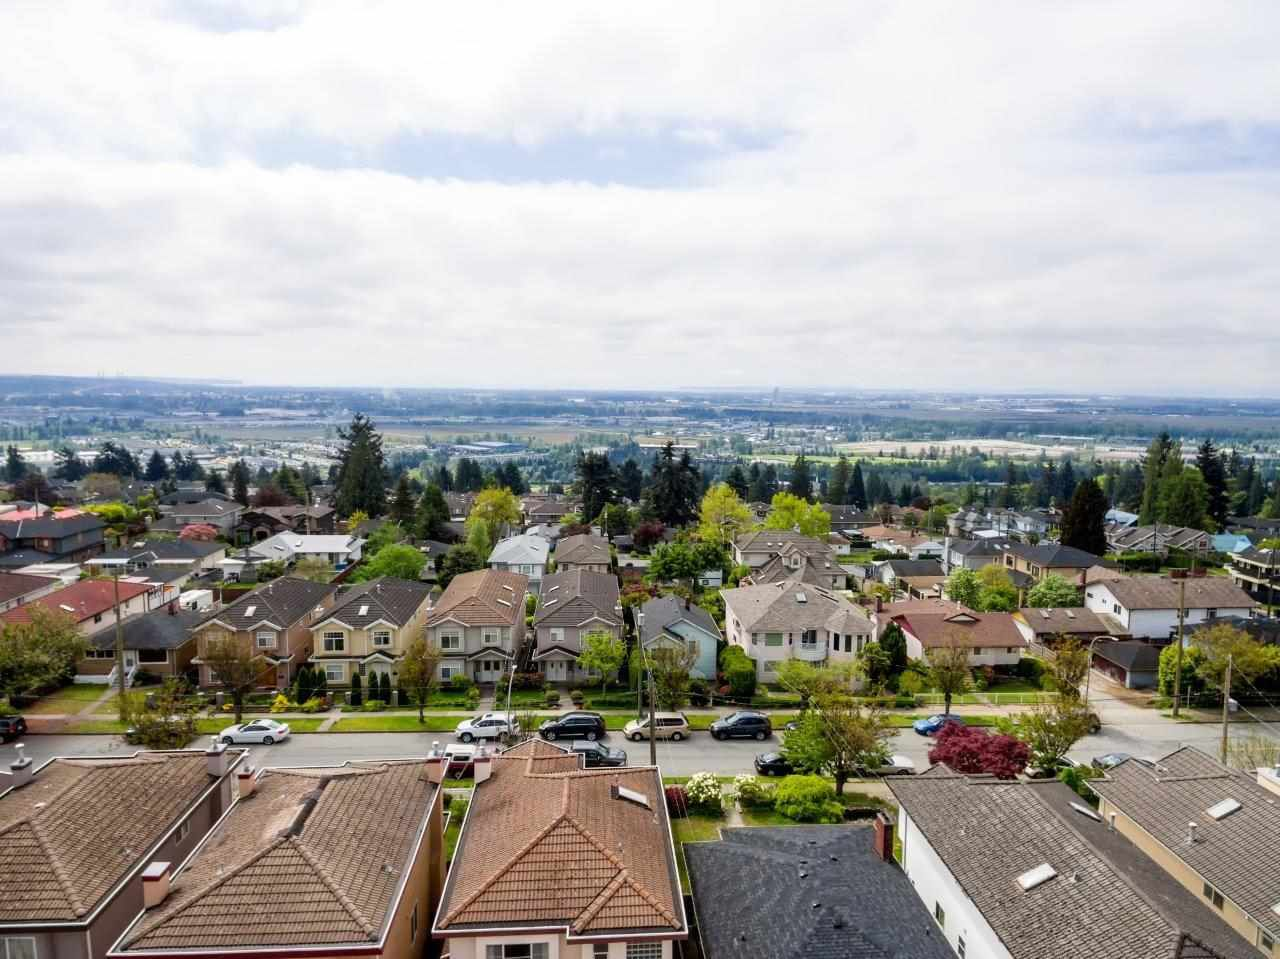 Main Photo: 5282 NEVILLE Street in Burnaby: South Slope House for sale (Burnaby South)  : MLS®# R2265925